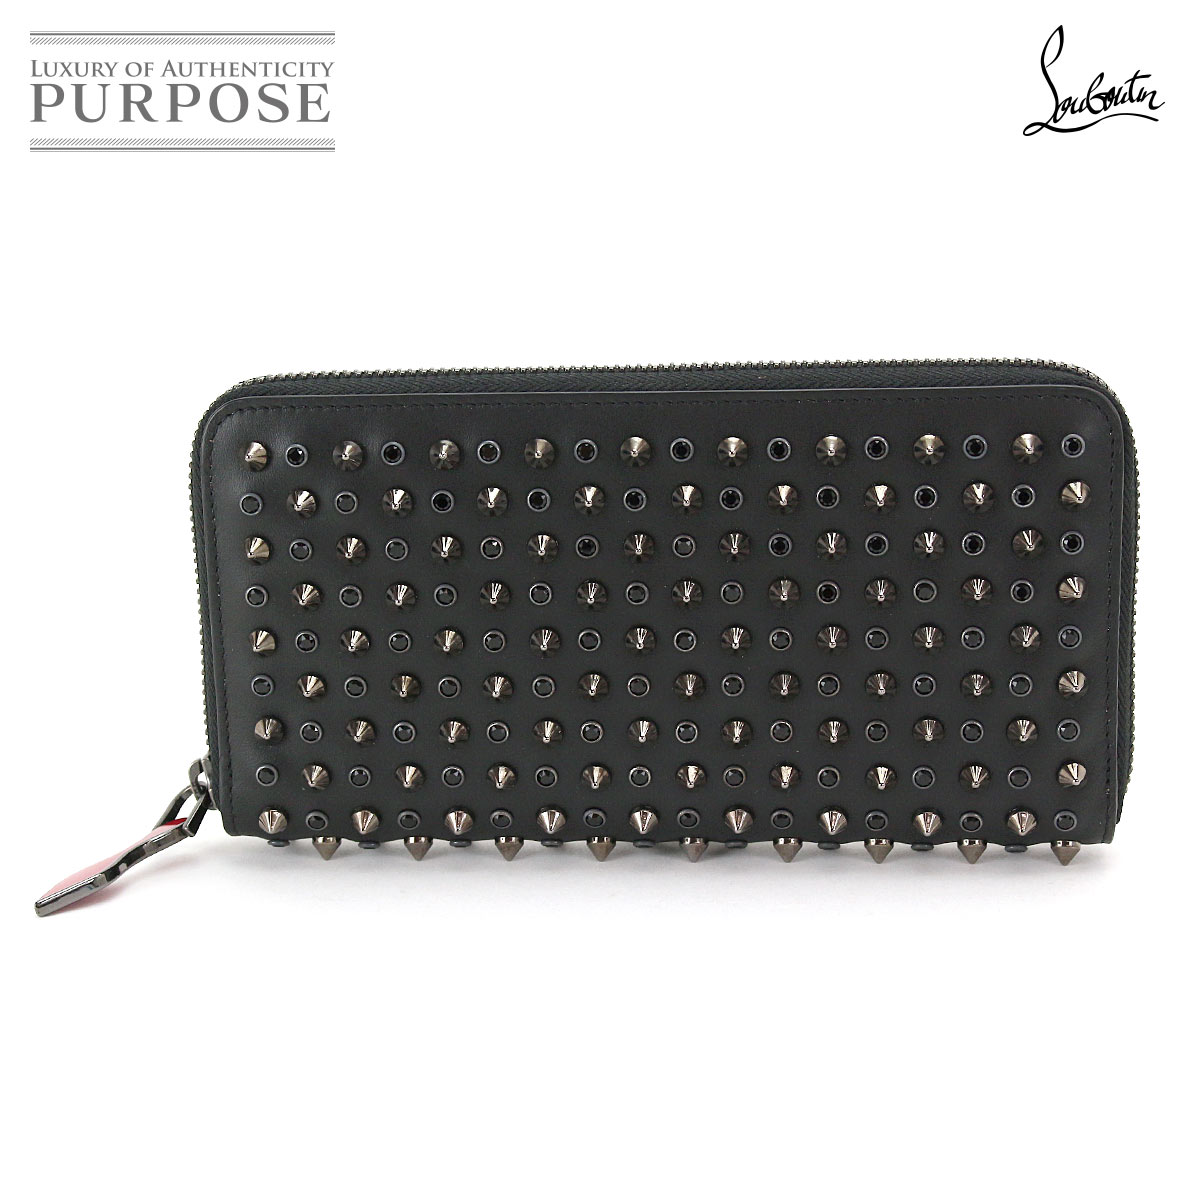 bfb9e8a2297 クリスチャンルブタン Christian Louboutin panettone spikes studs round fastener long  wallet leather black 1155016